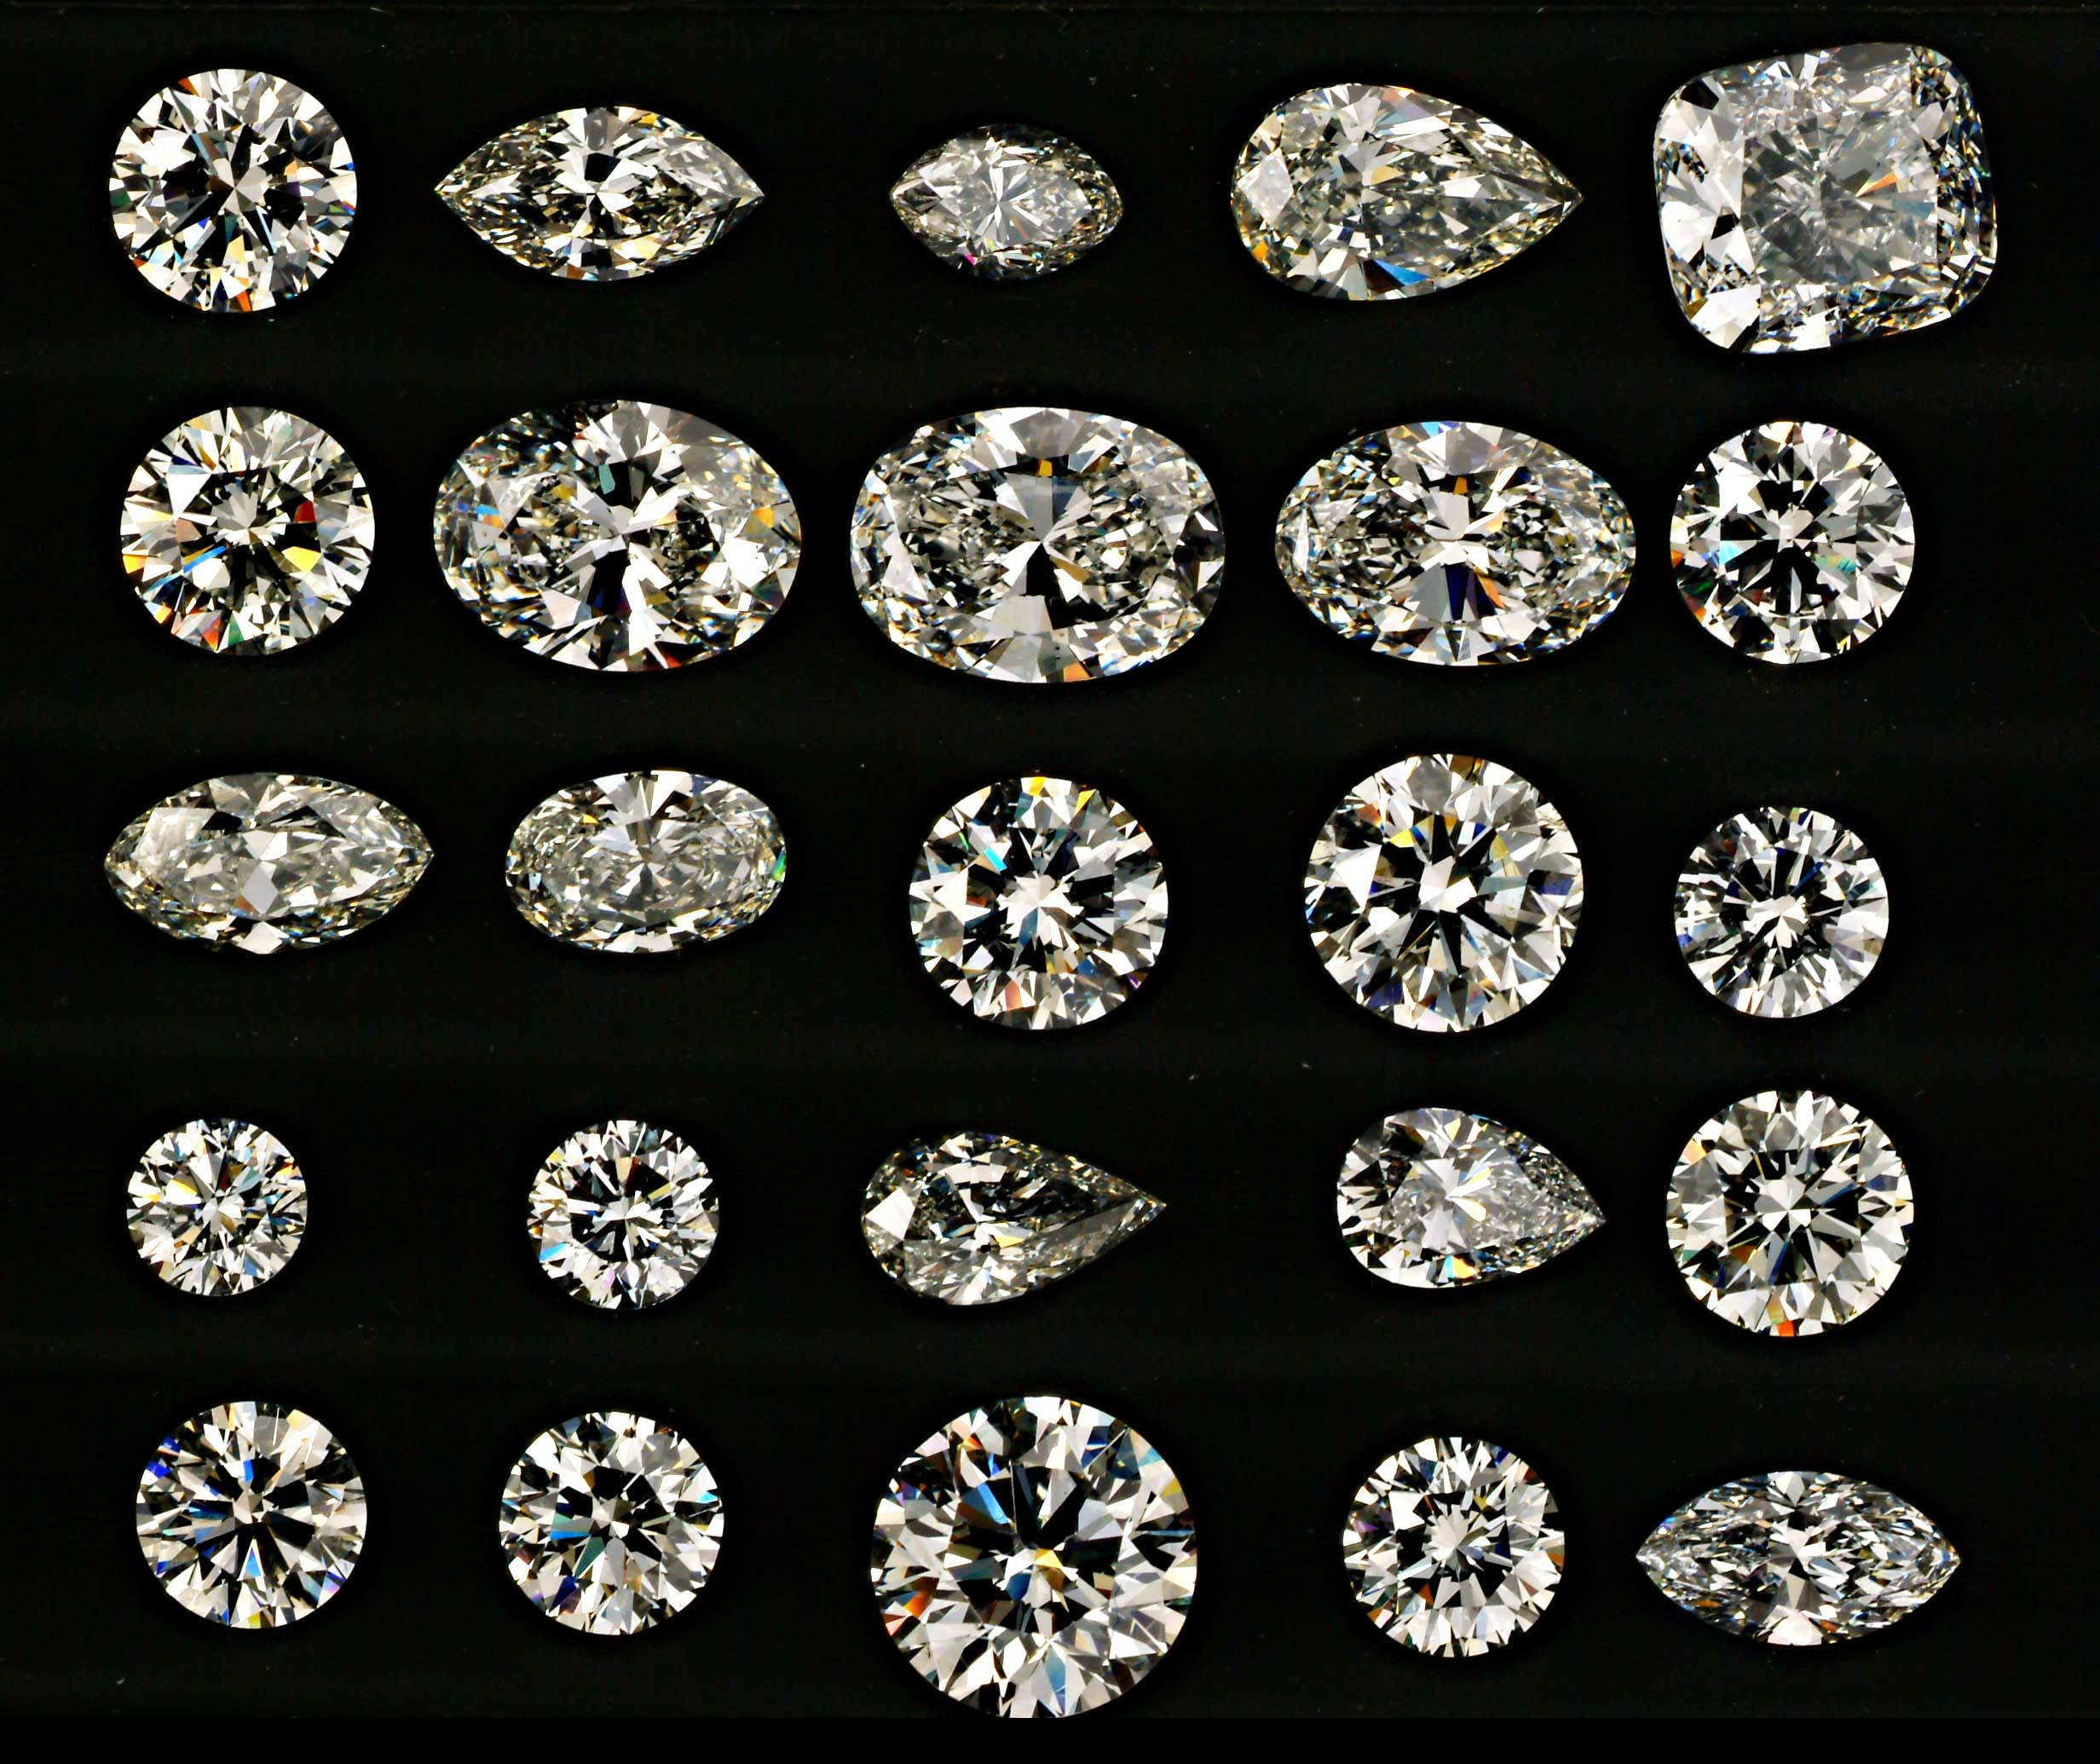 investing total diamond with investment as grading diamonds an certificate asset saving and valuation the transparency hrd